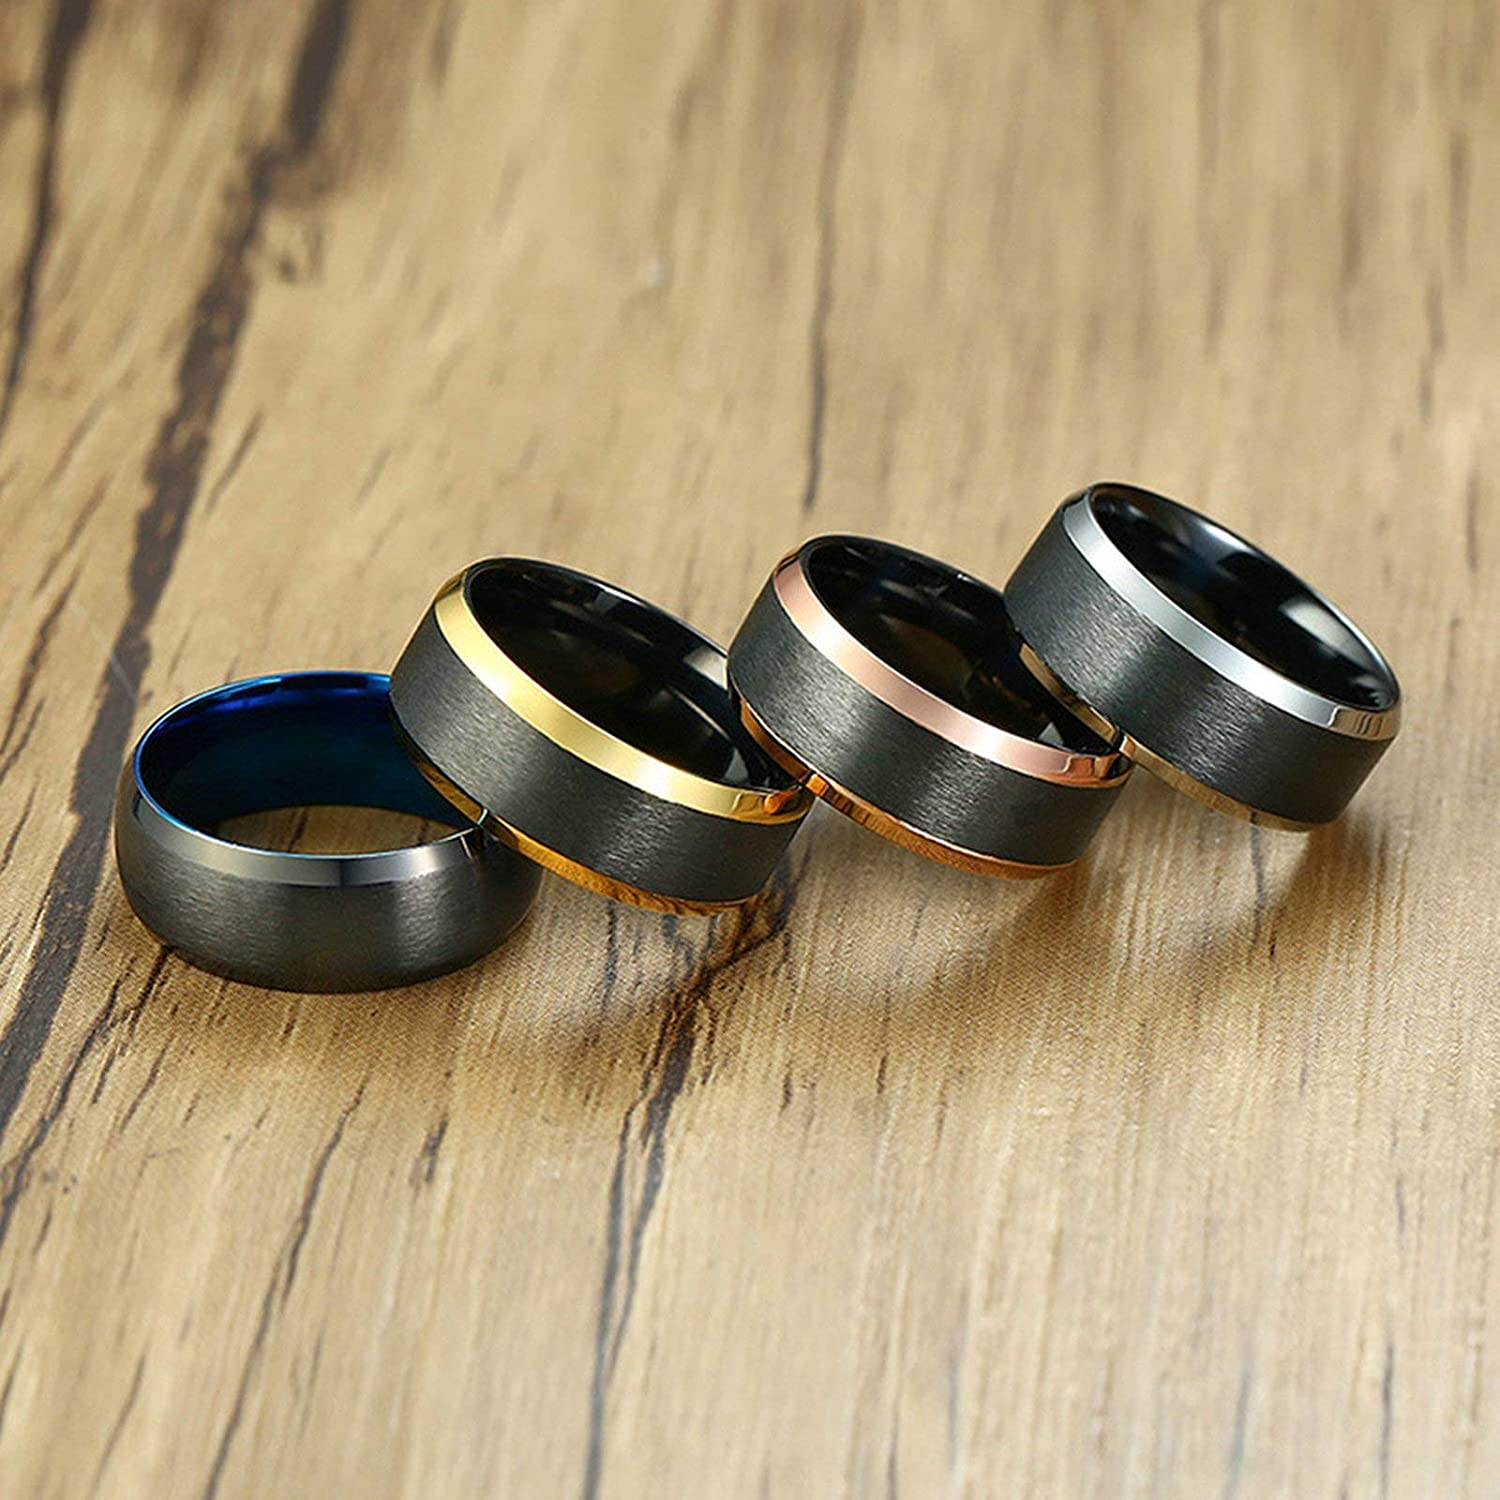 Aooaz Stainless Steel Wedding Bands Brushed Finished Ring for Women Men Black US Size 12